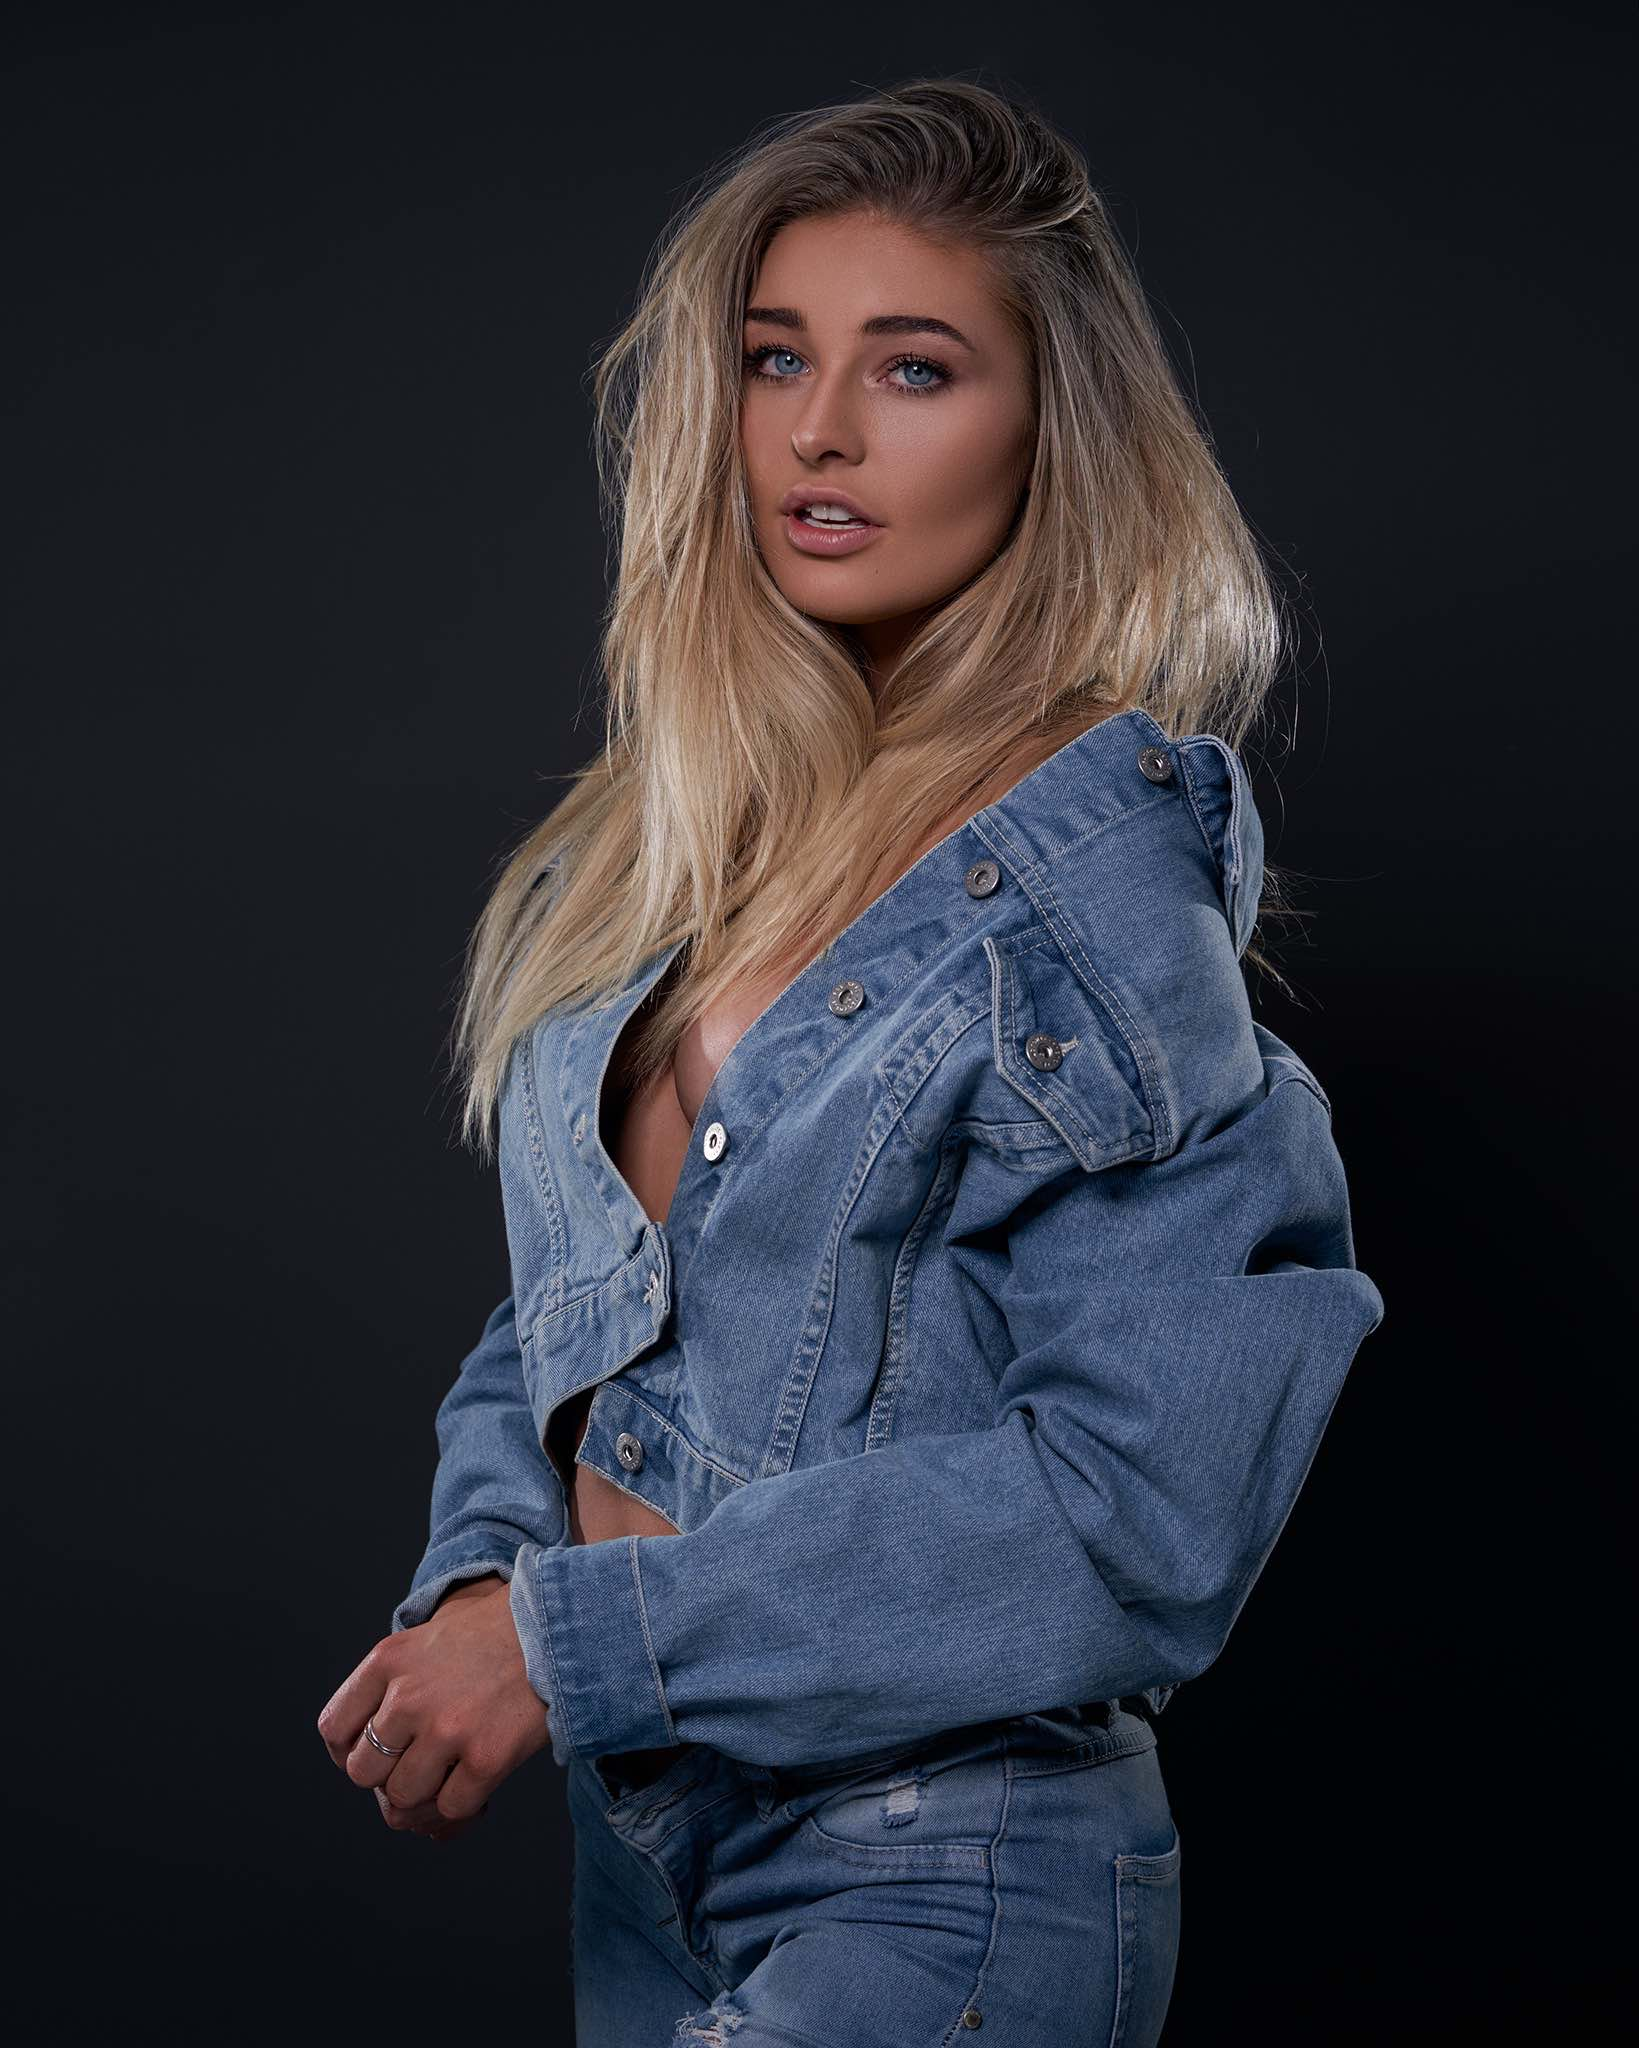 Our South African girls feature with Jocasta Durr